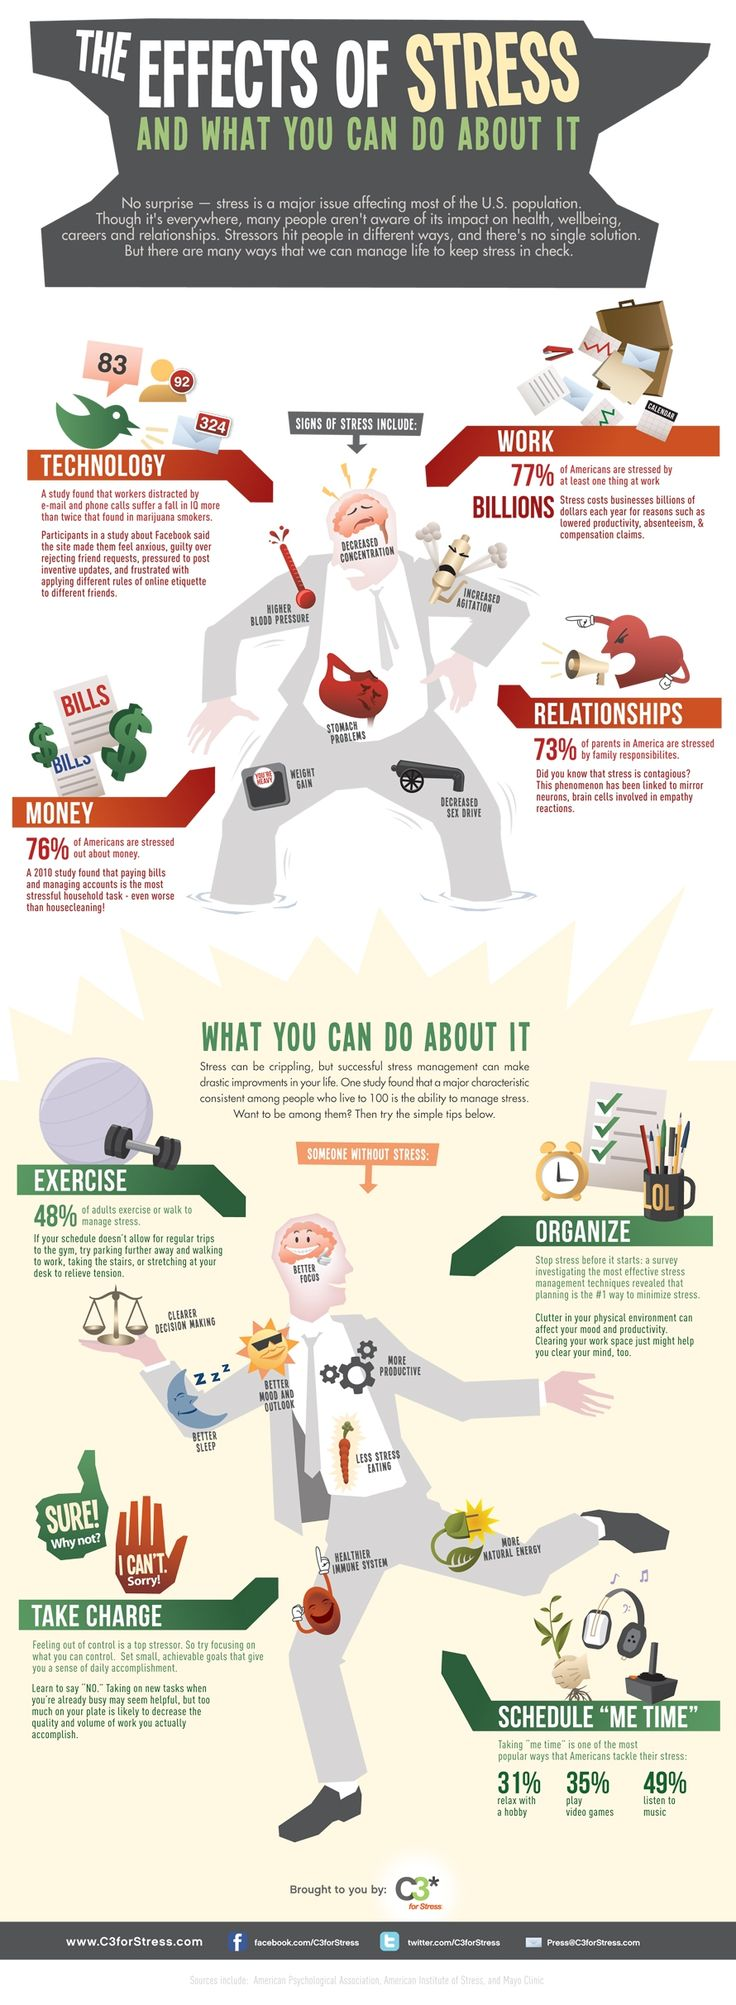 How To Fight Stress. For more health tips and anti-aging skin products, visit www.nuvosa.com